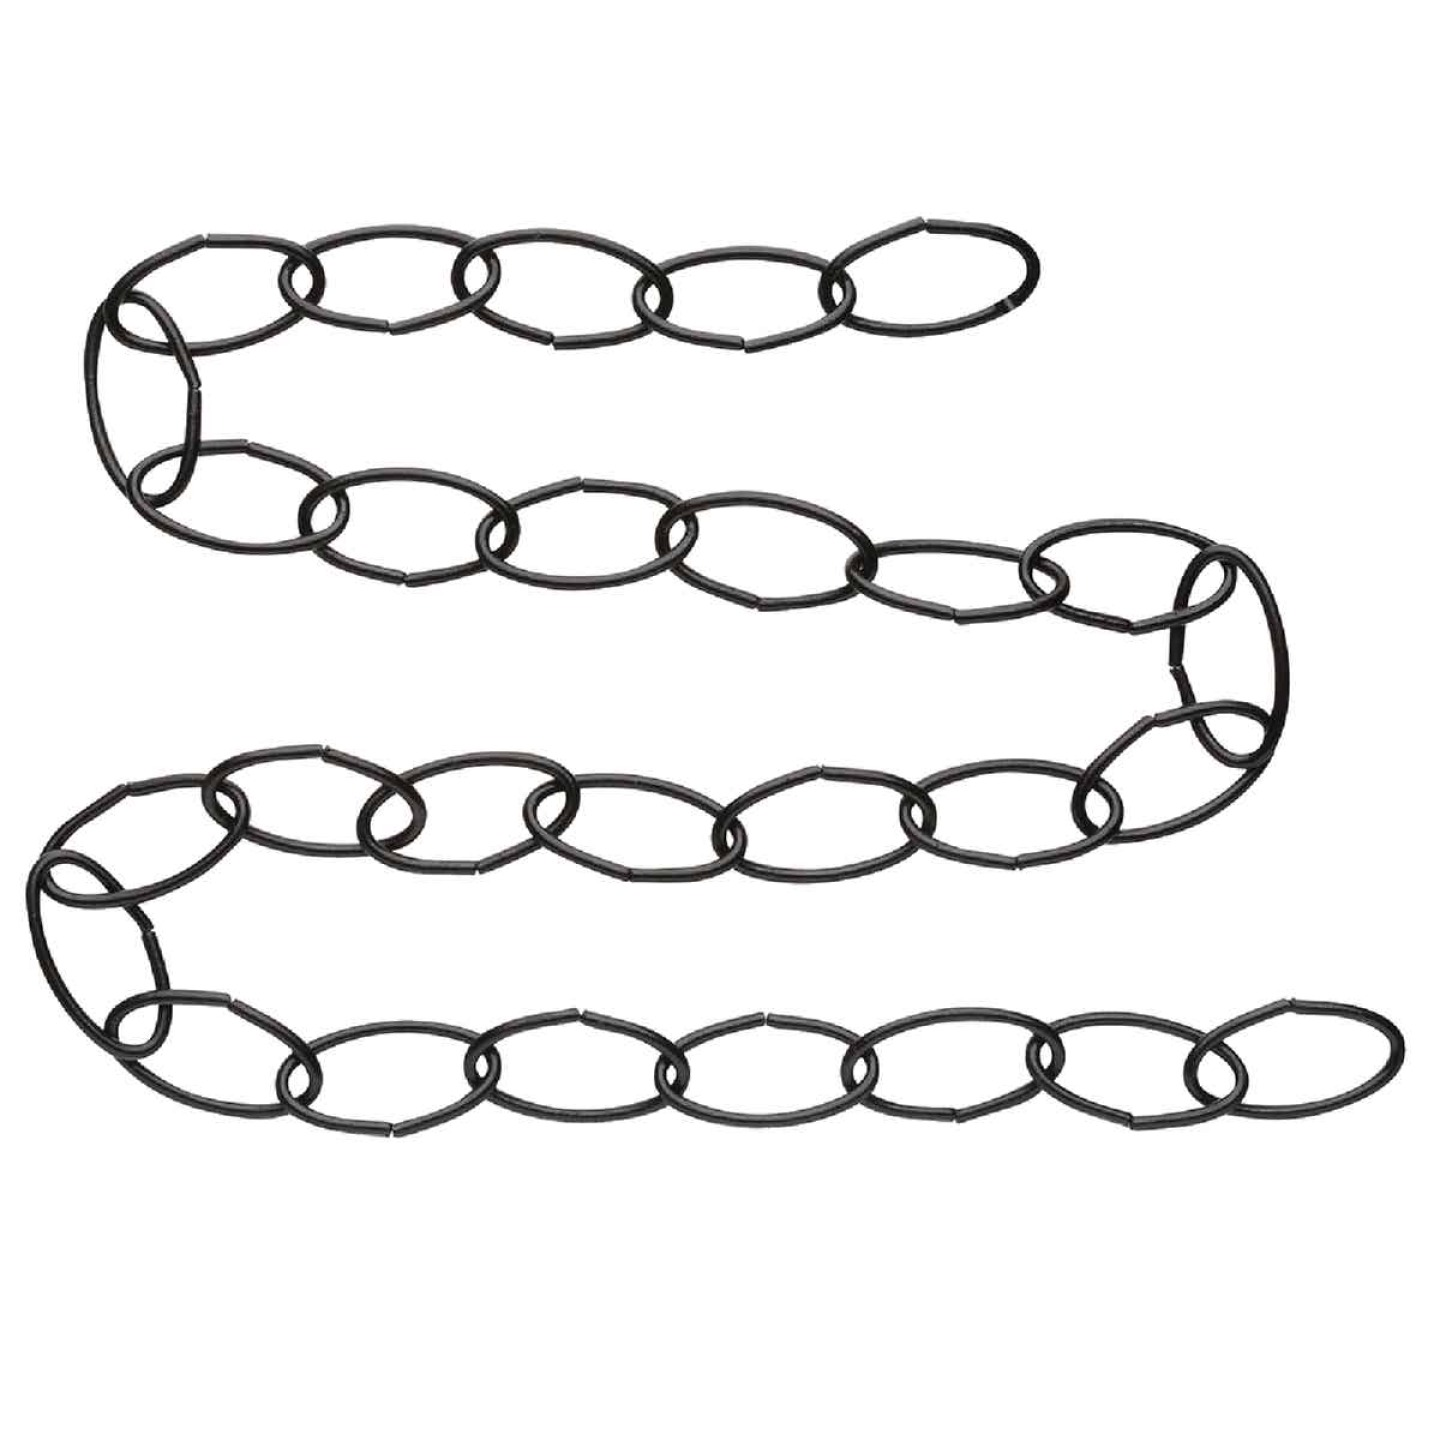 National 36 In. Black Metal Hanging Plant Extension Chain Image 3